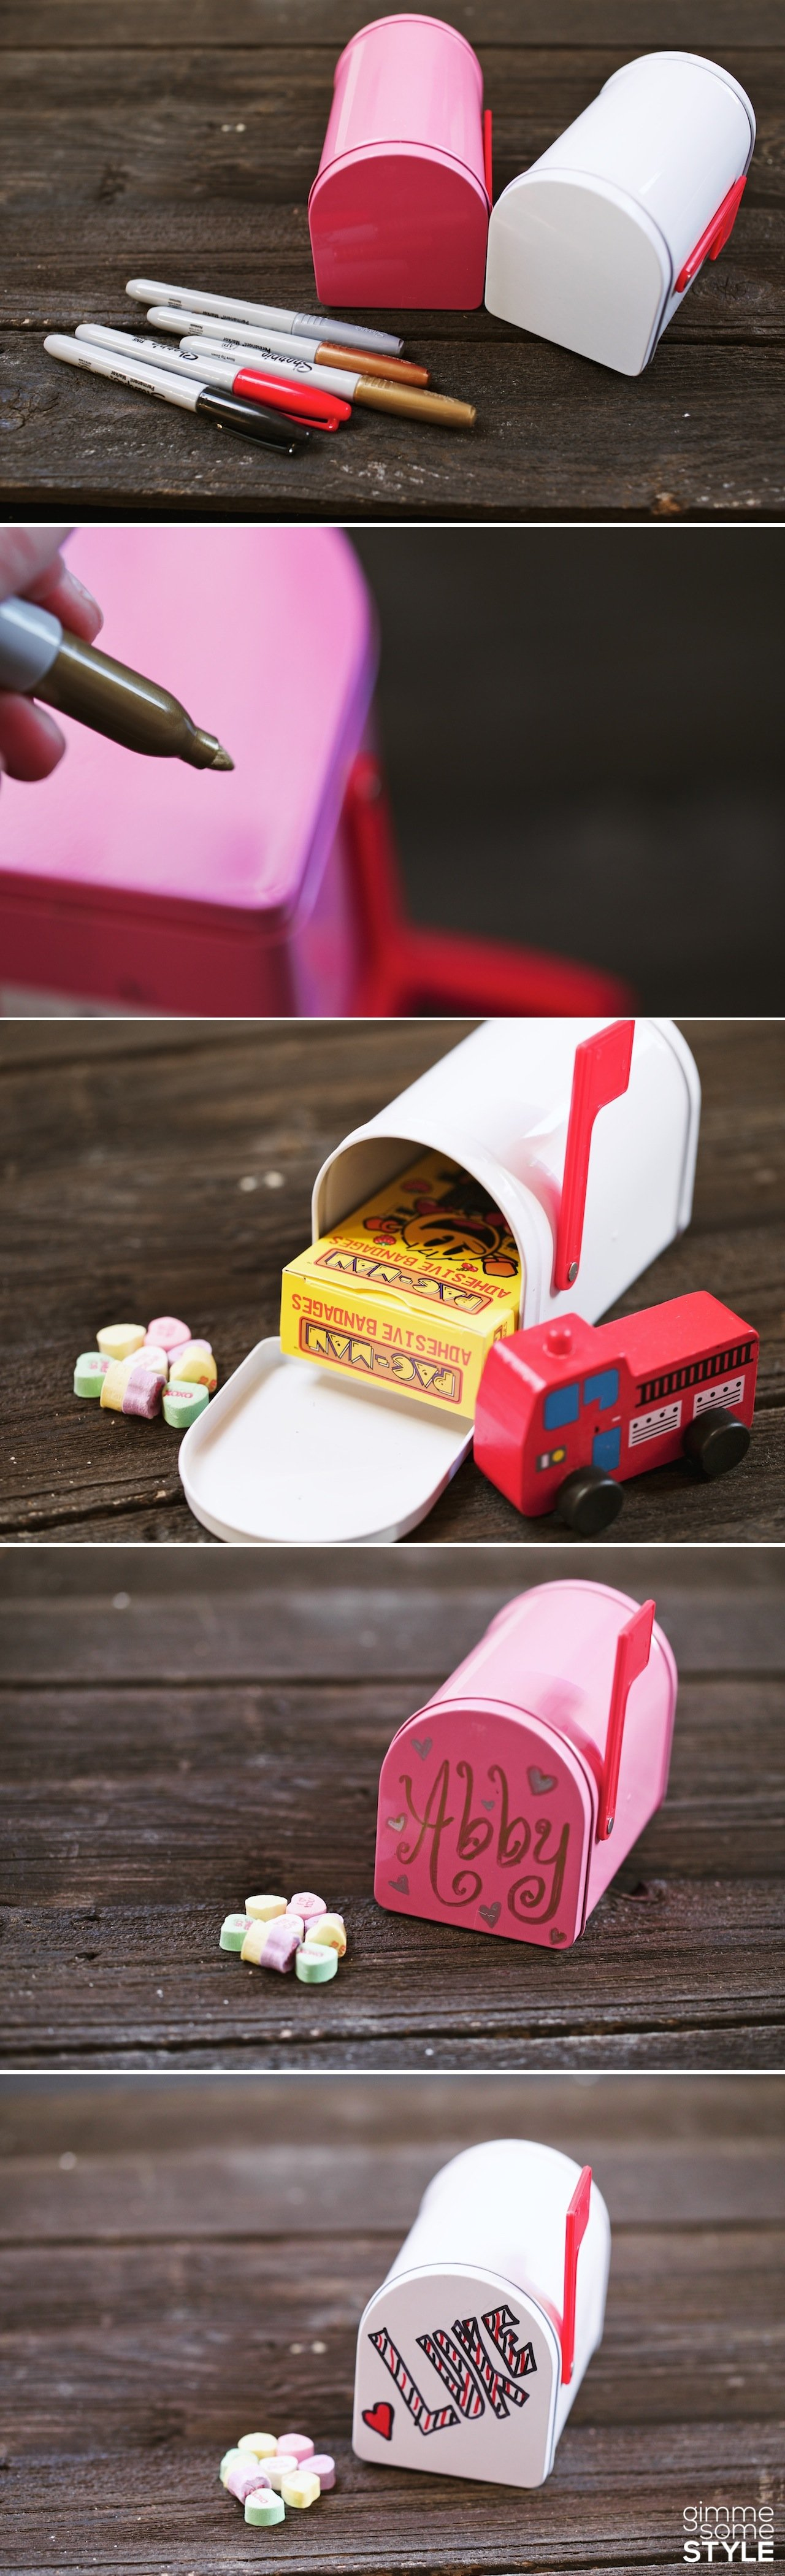 Makeover this Target dollar spot mailbox into an adorable valentine's box! | www.gimmesomestyleblog.com #valentines #target